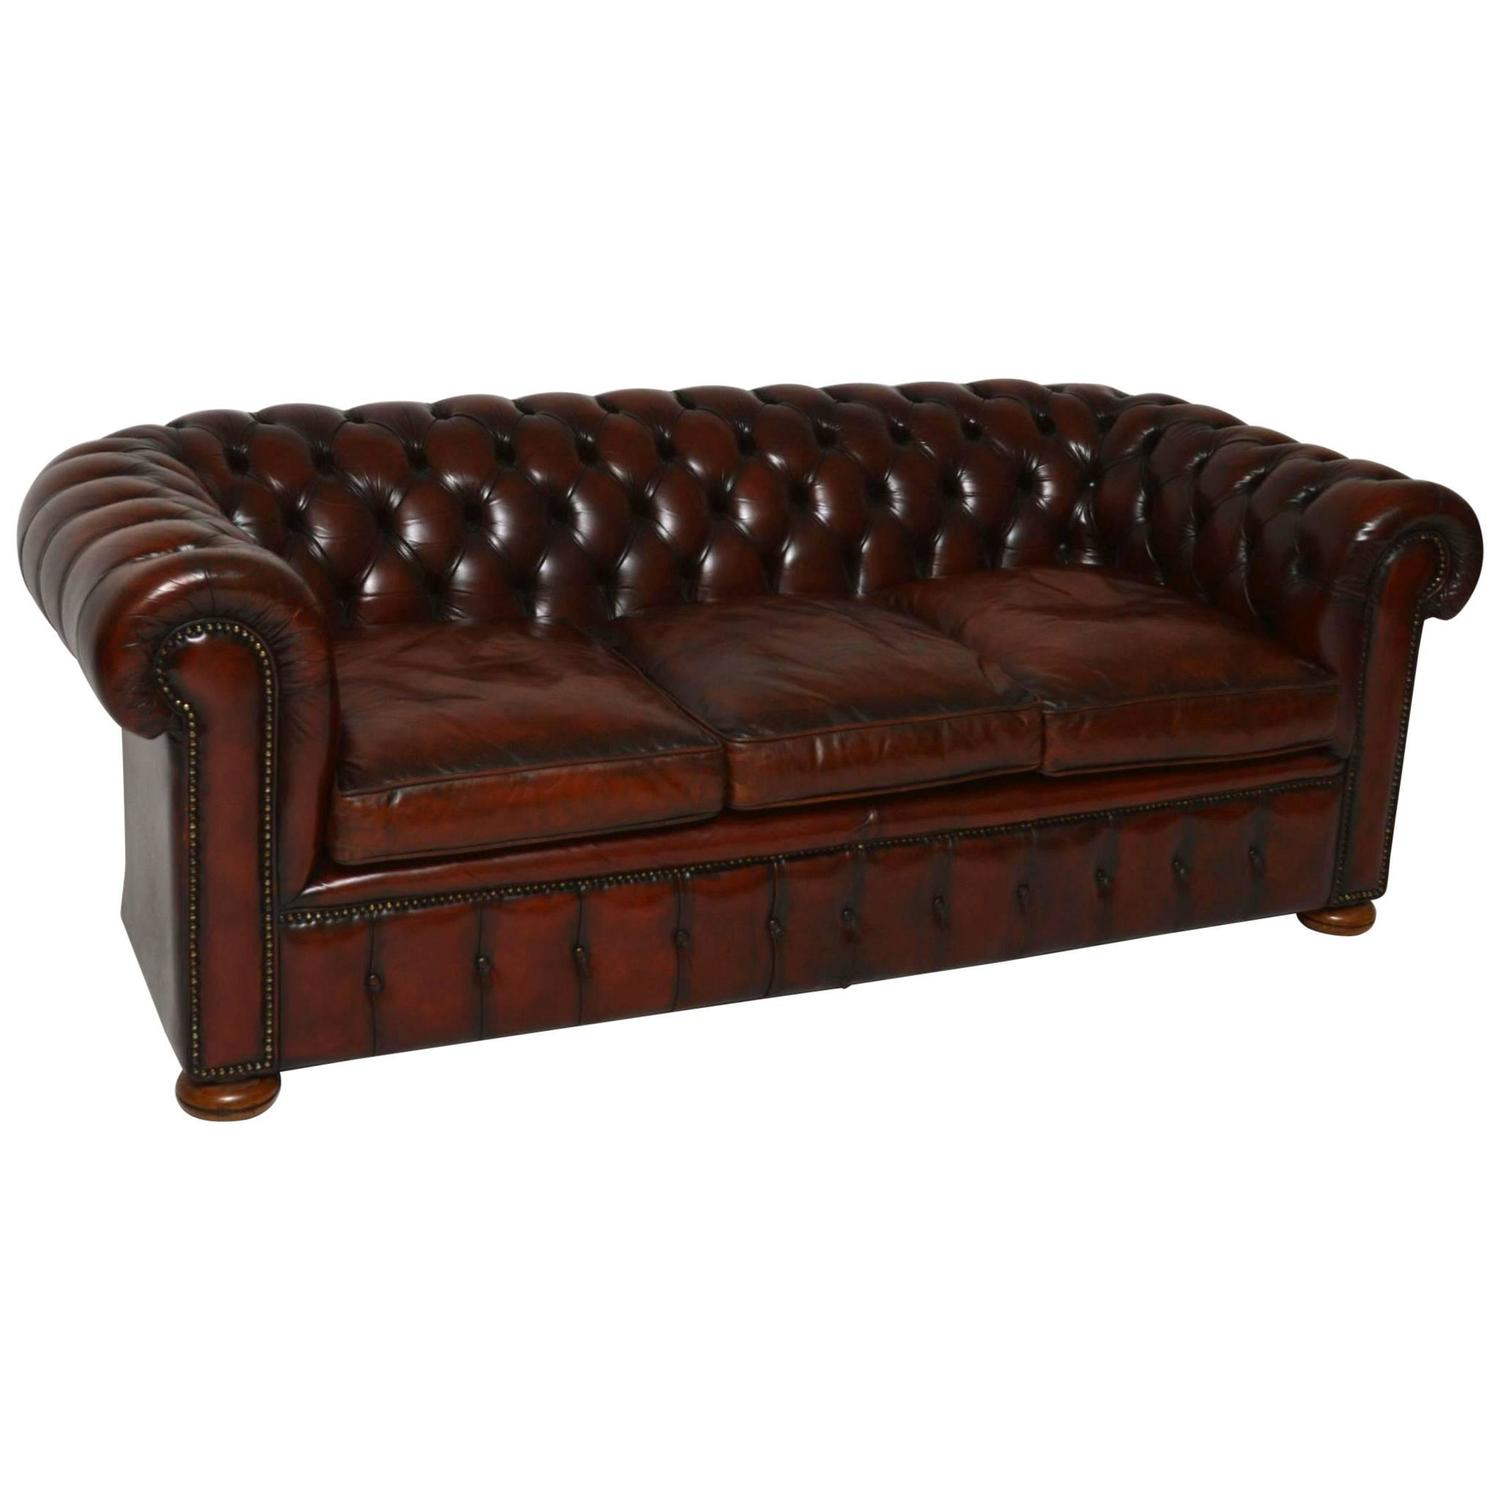 Leather Chesterfield Sofa For Sale antique leather chesterfield sofa in original leather for